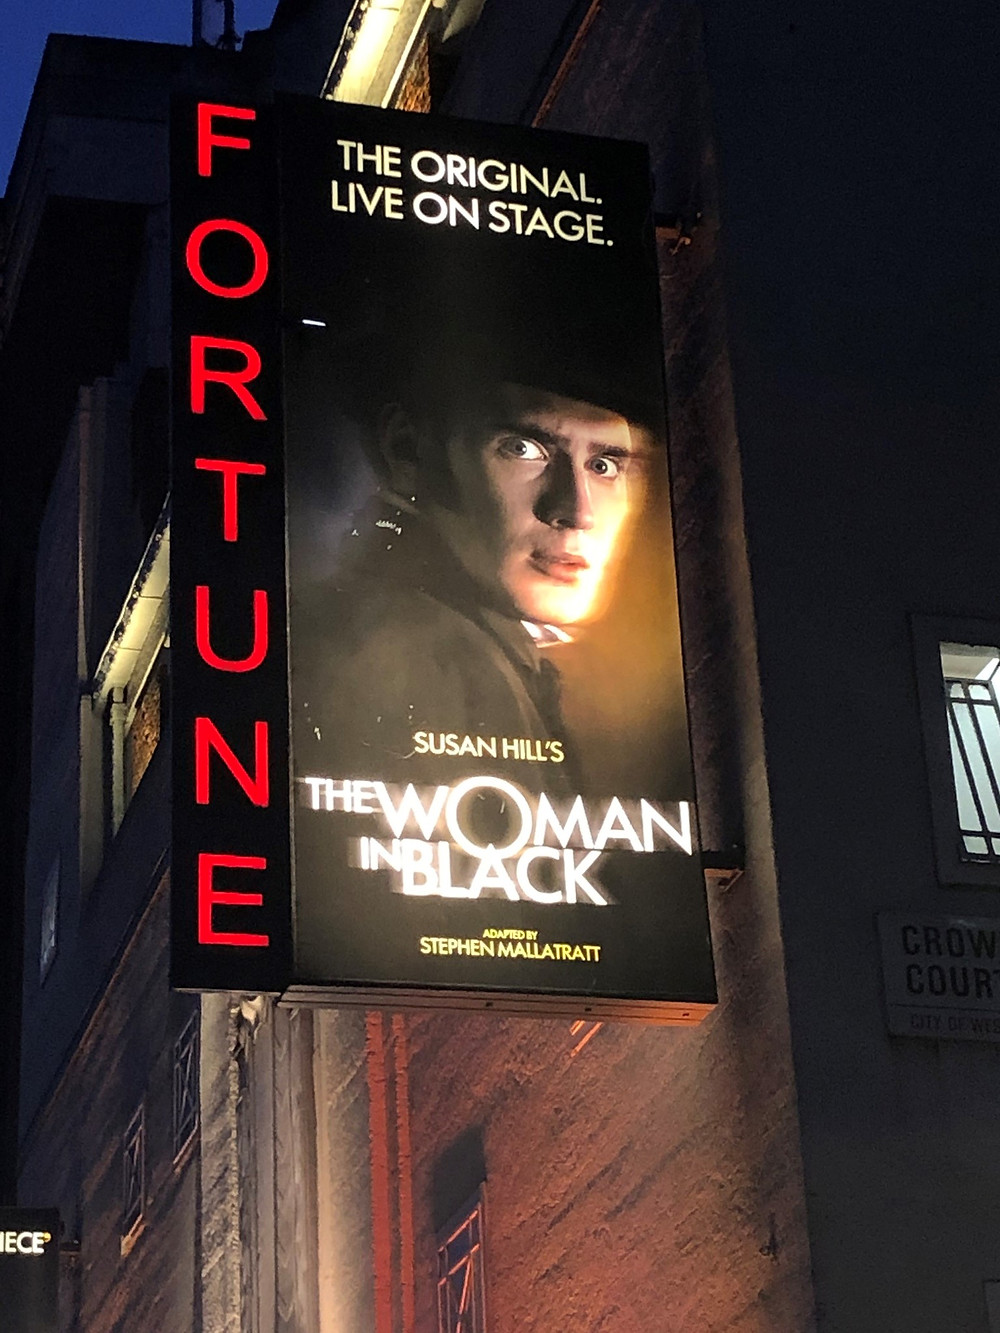 Theatre marquee for play 'The Woman in Black' at the Fortune Theatre in London